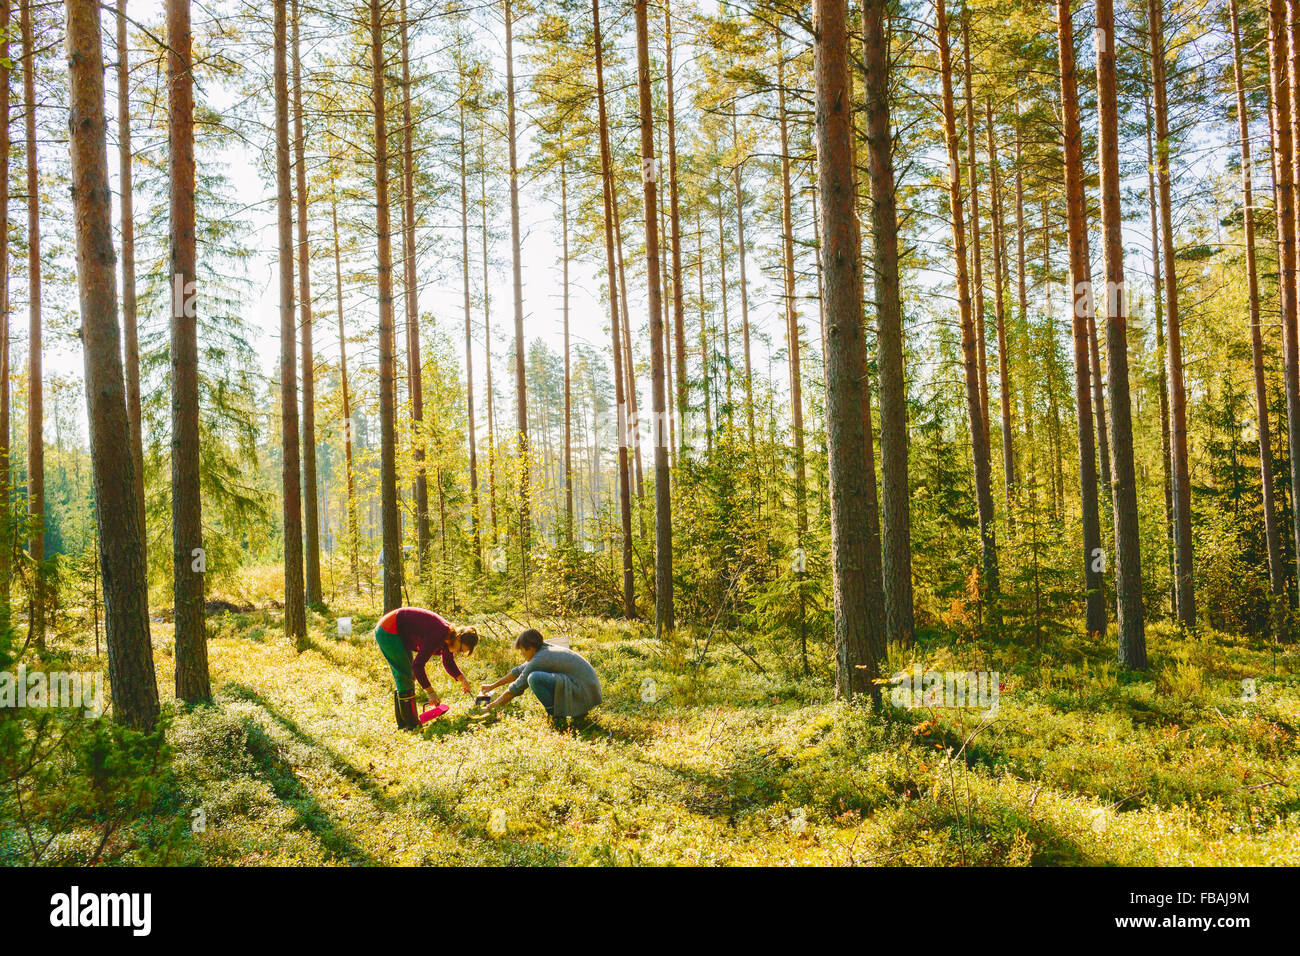 Finland, Etela-Savo, Huttula, Two women picking mushrooms in forest Stock Photo